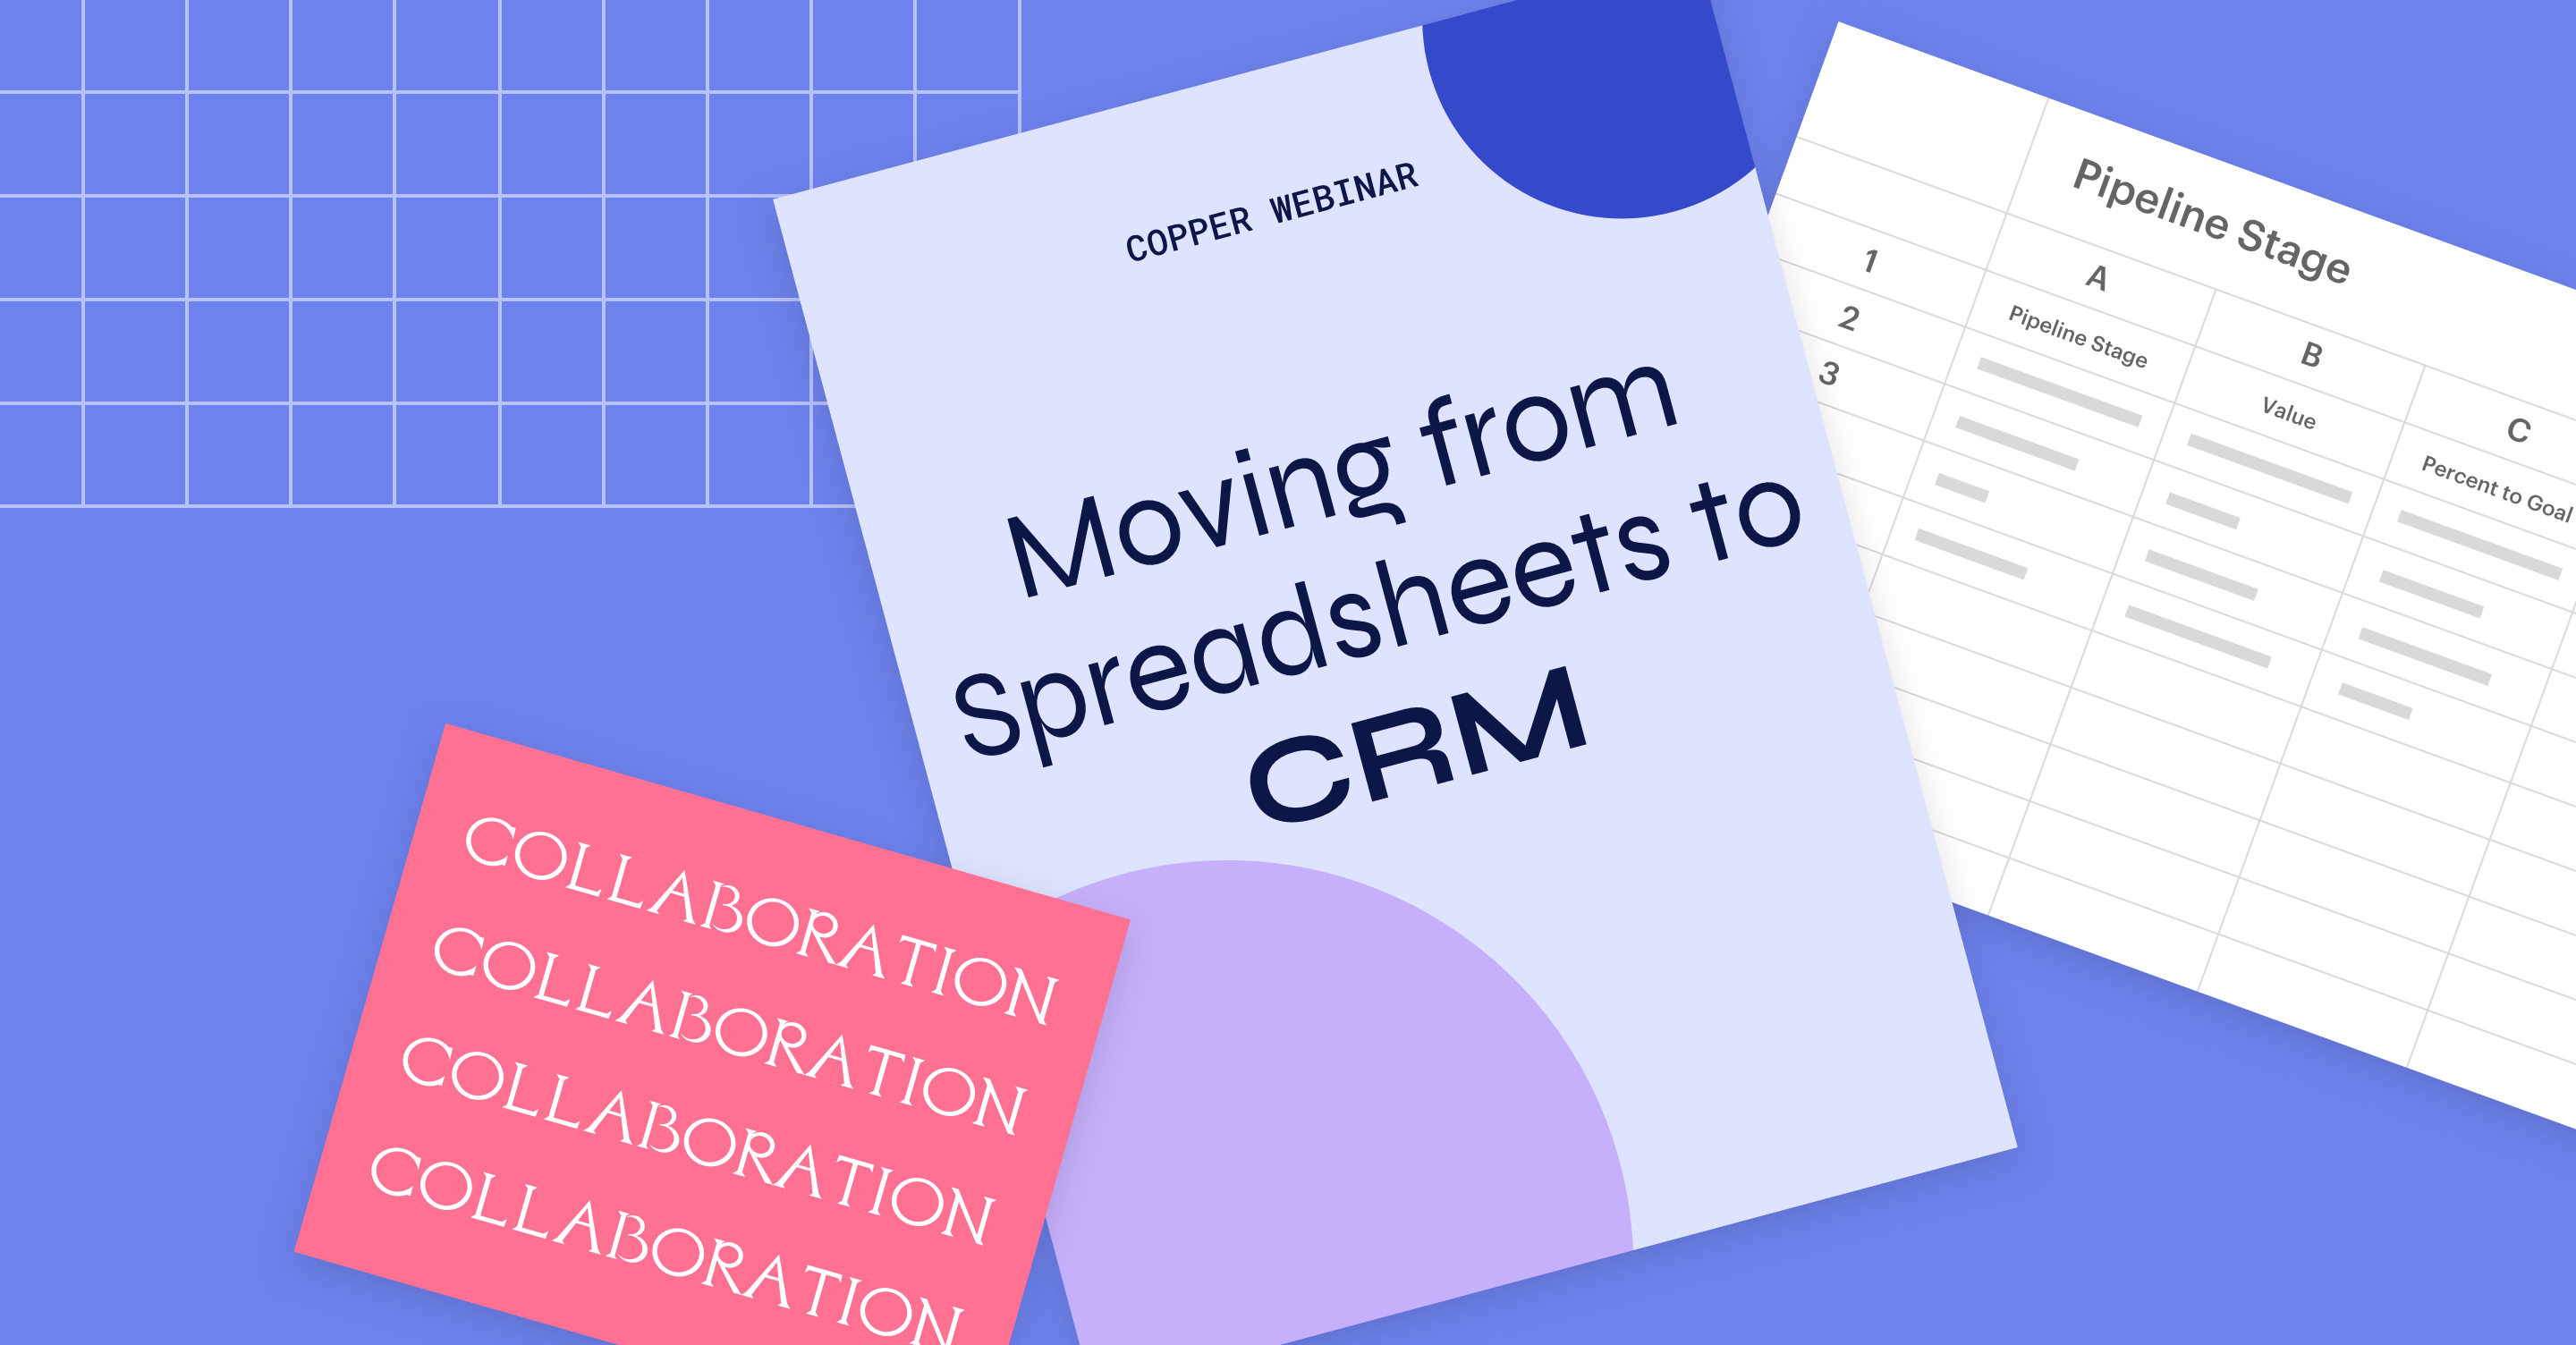 Moving from Spreadsheets to CRM